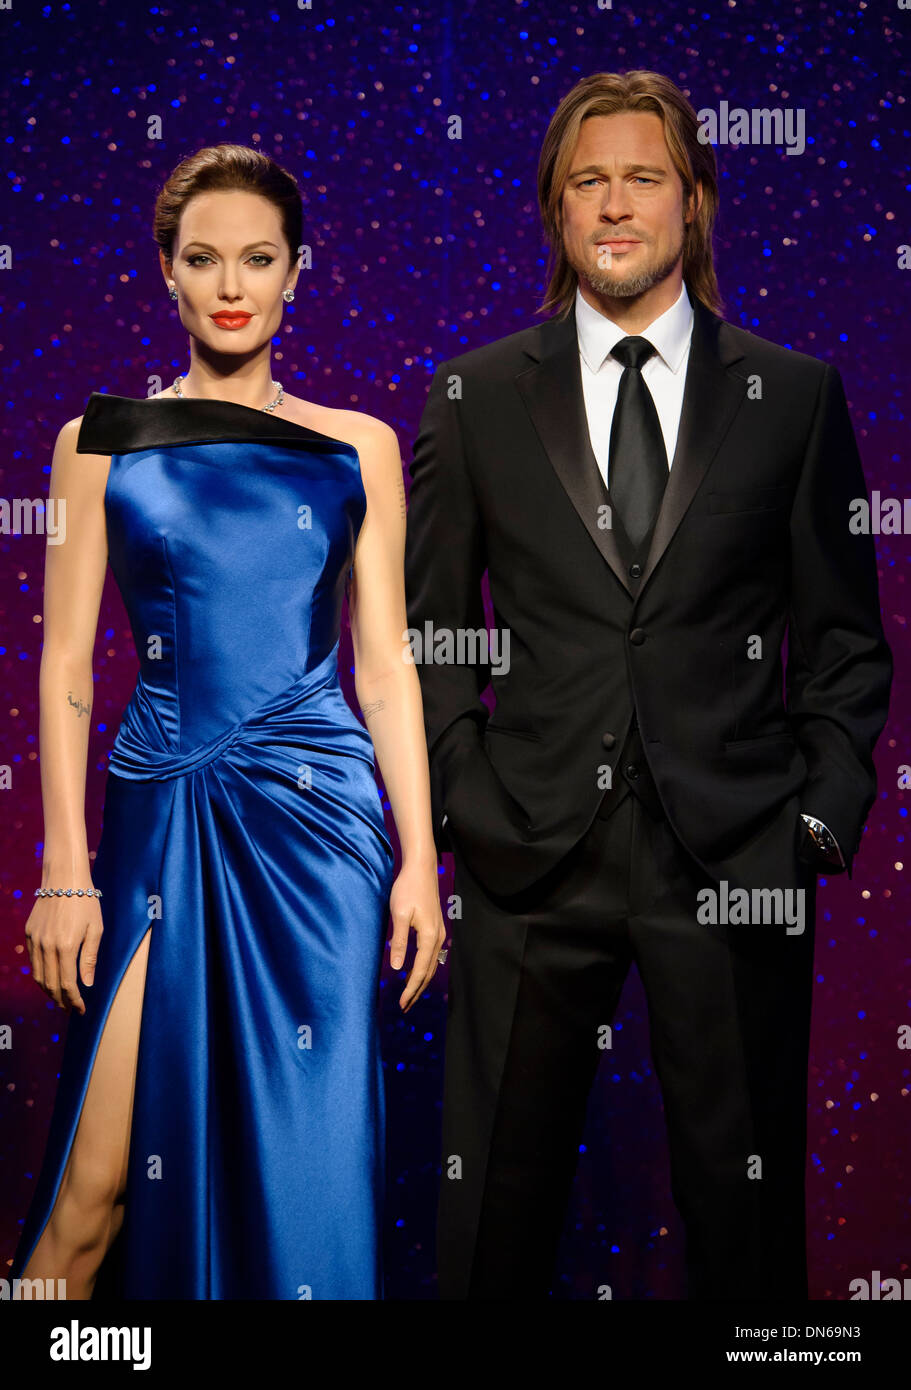 The waxworks of Brad Pitt and Angelina Jolie at Madame Tussaud's London. - Stock Image